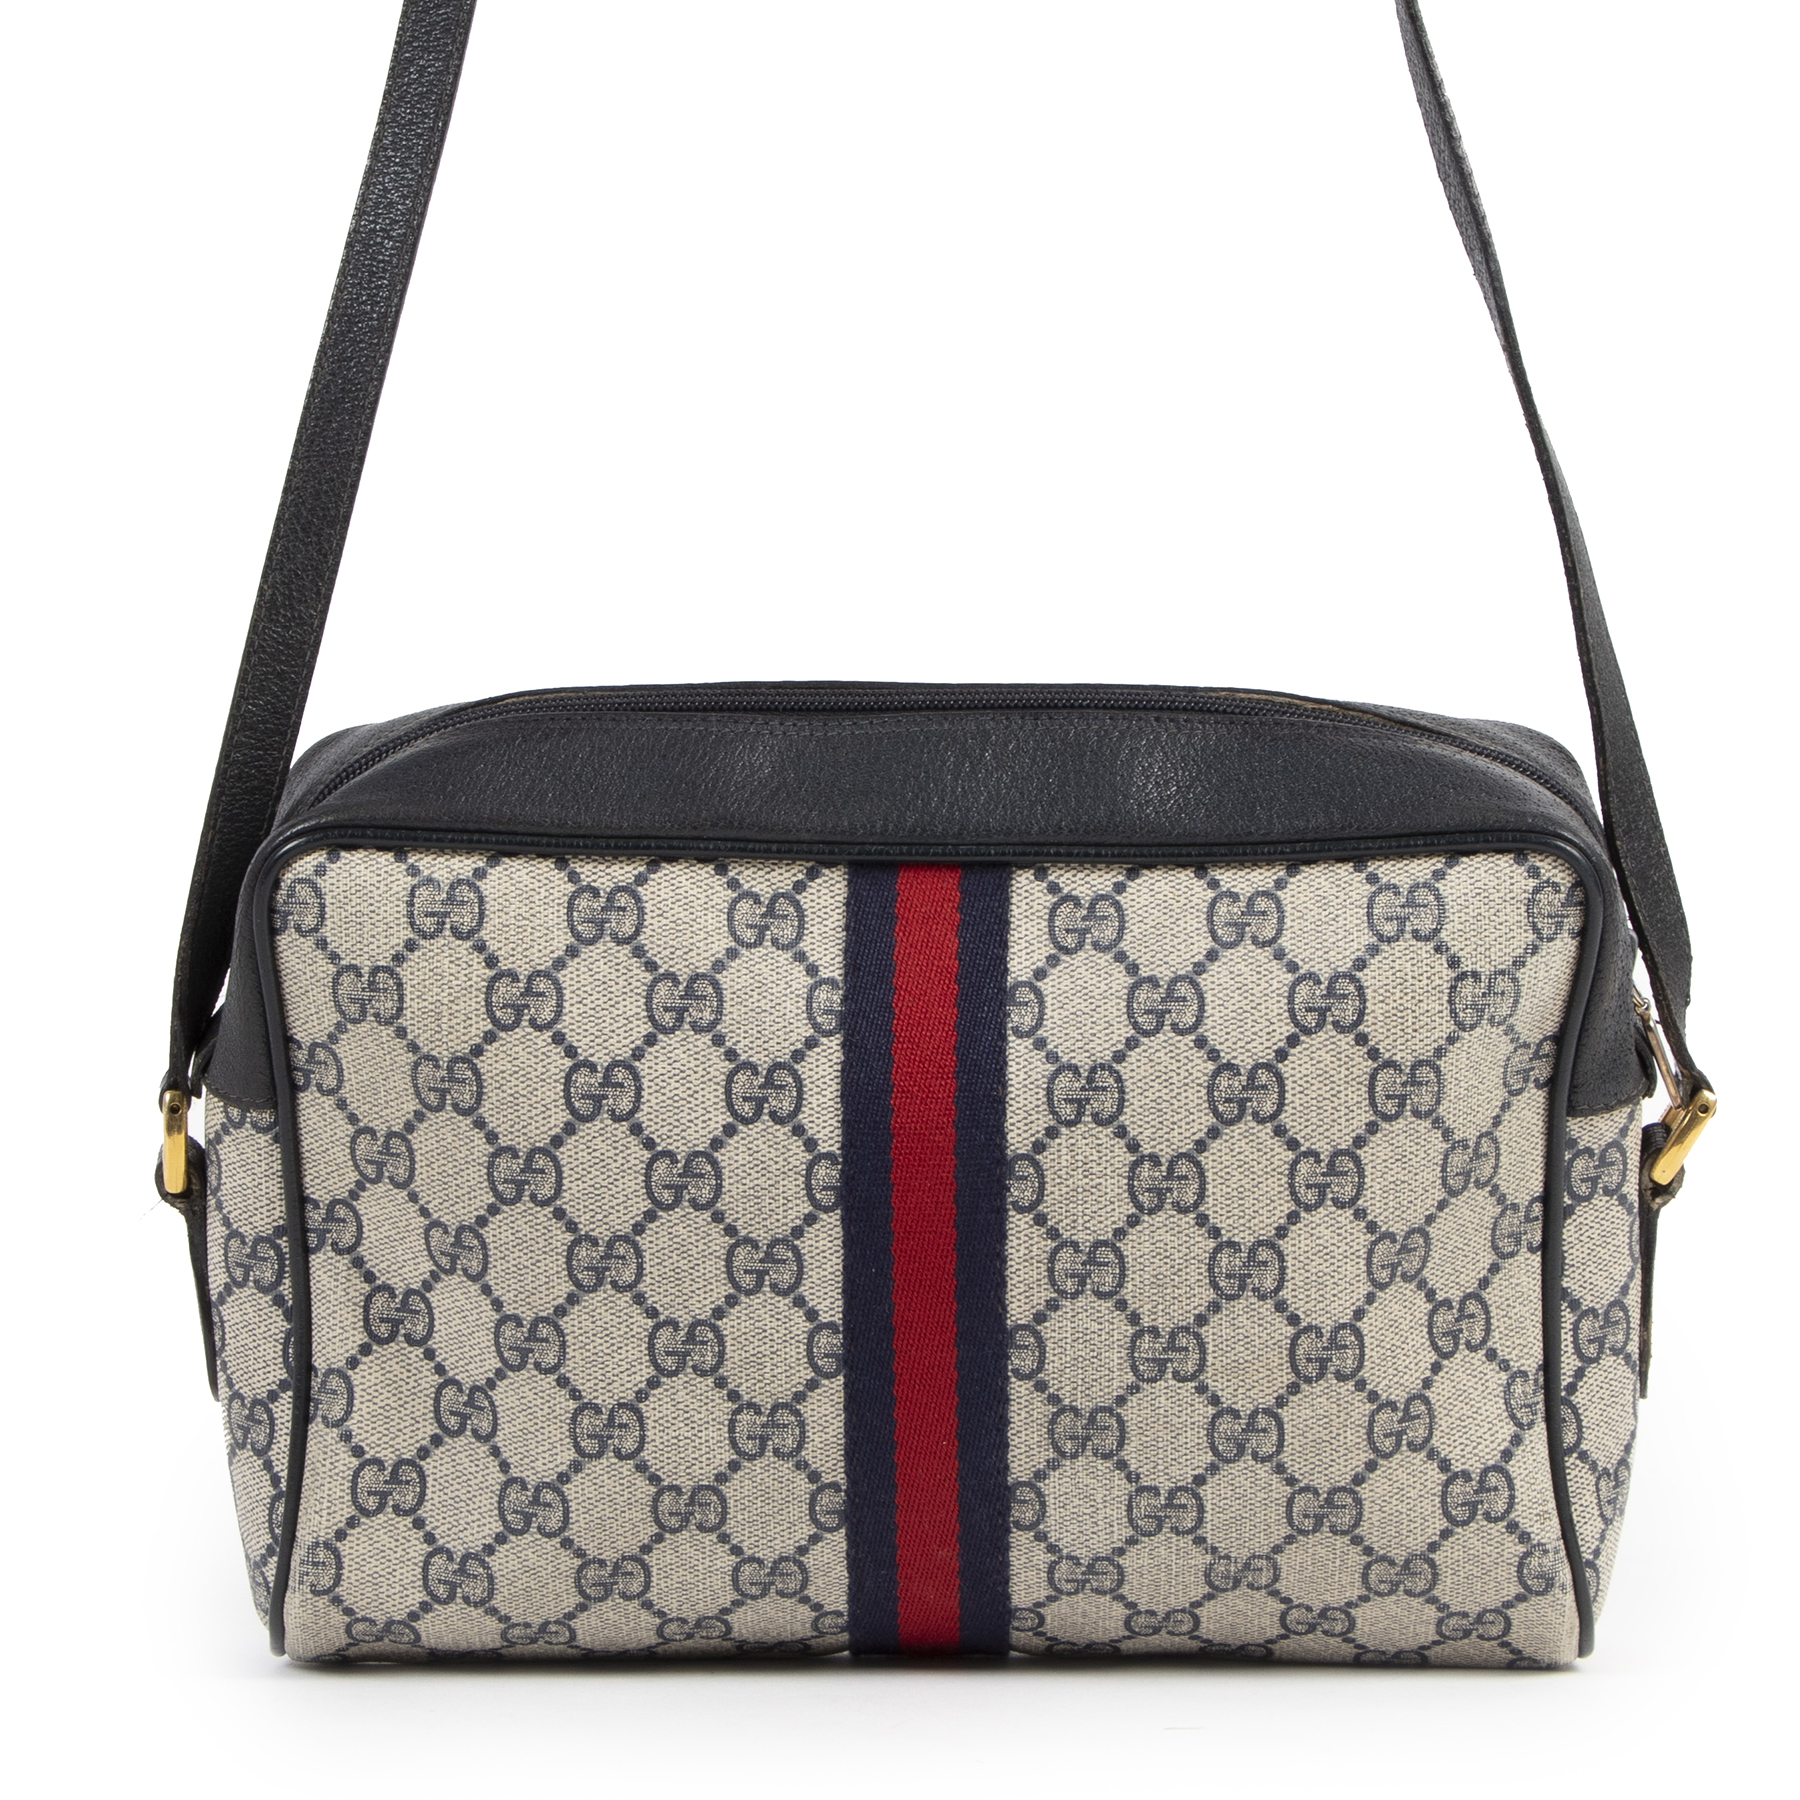 Authentic secondhand Gucci Web Monogram Blue Stripe Crossbody Bag designer bags luxury vintage webshop fashion safe secure online shopping